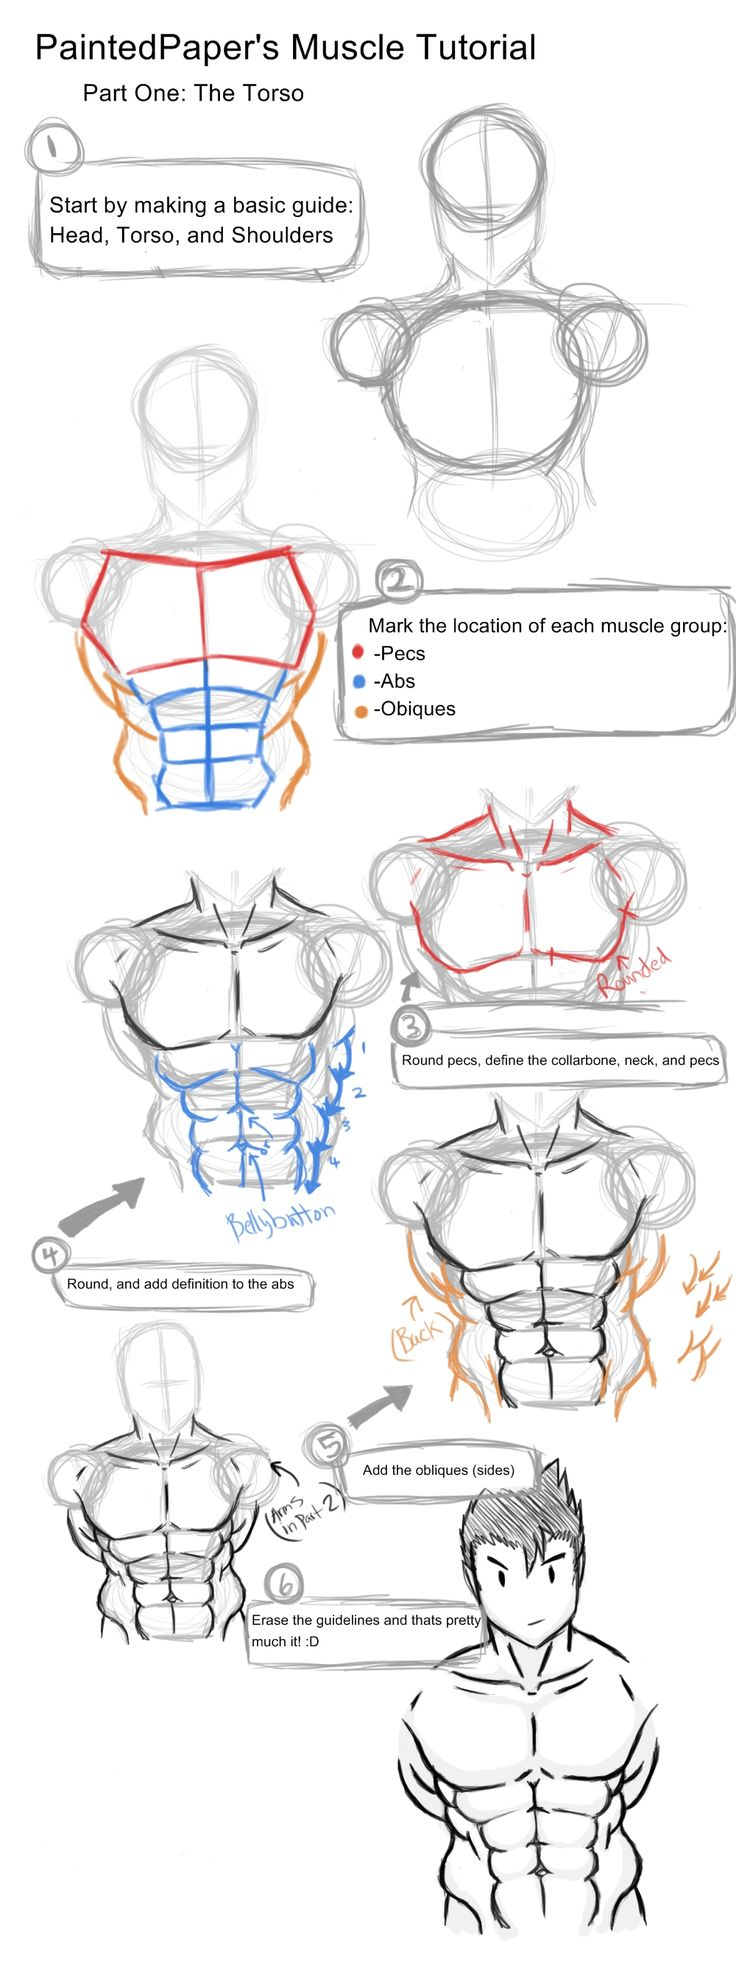 Big Muscles Tutorial - Part 1 by paintedpaper on DeviantArt